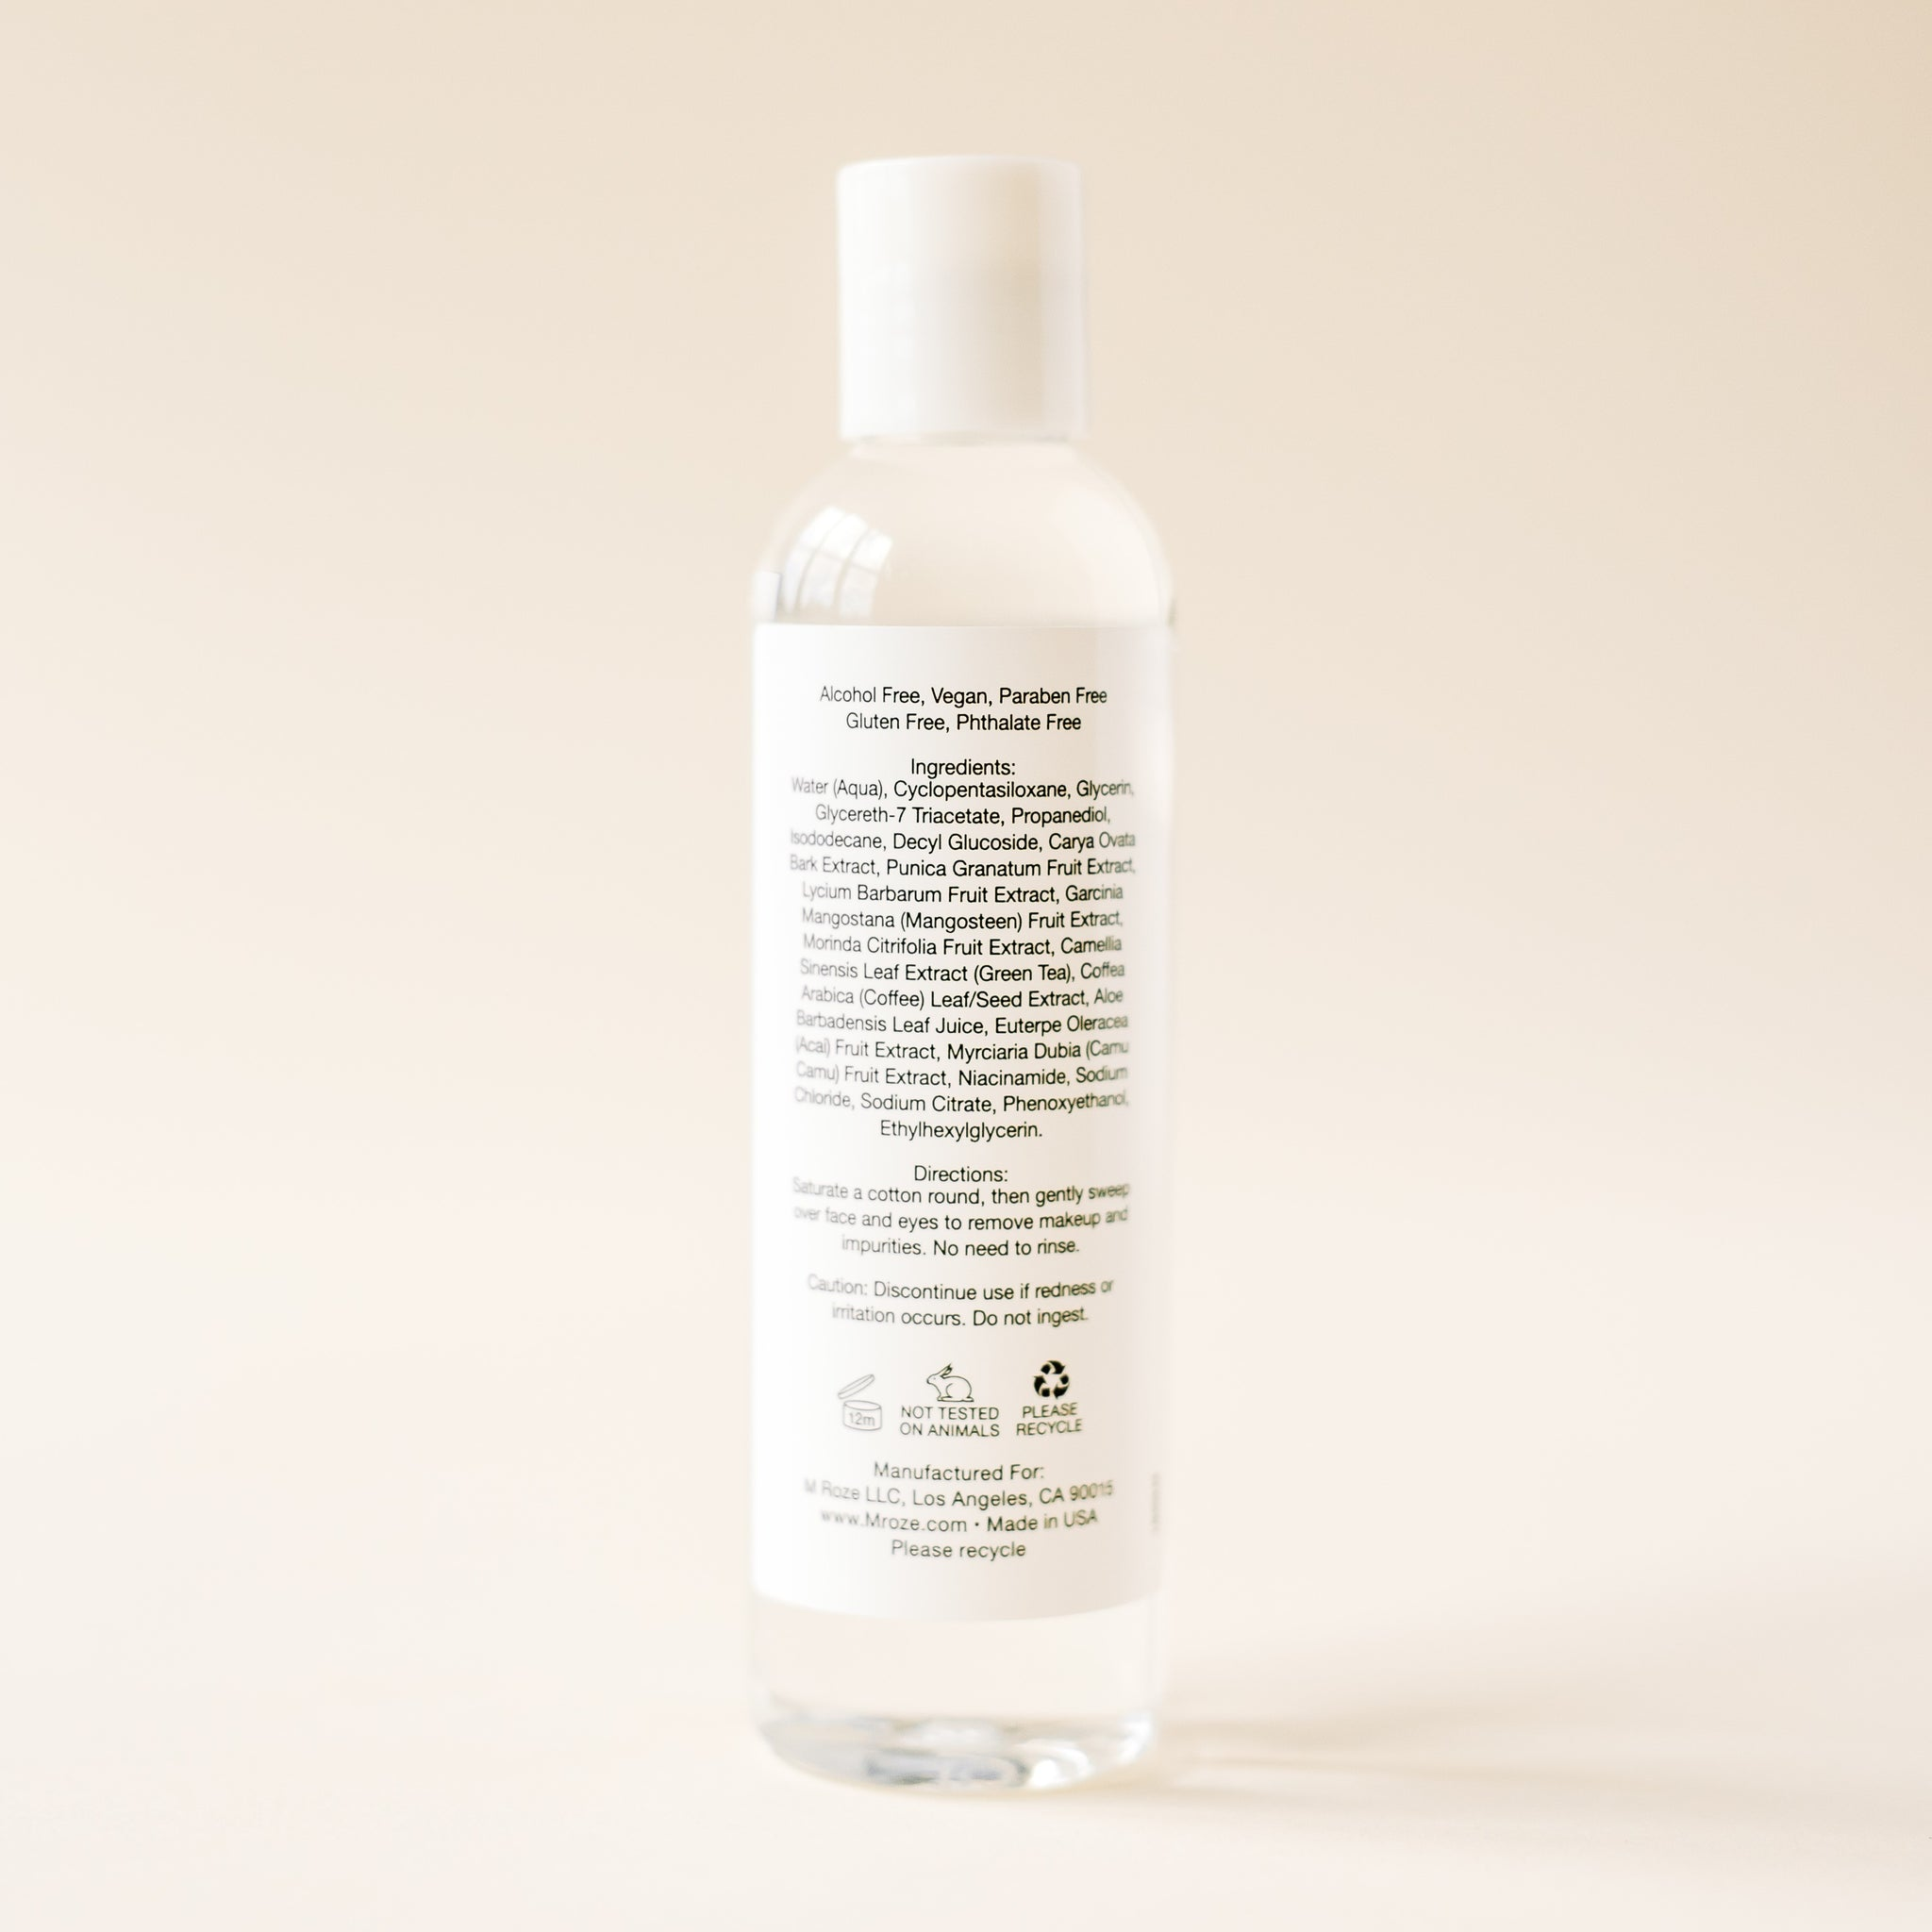 Micellar Cleansing Water All-in-1 Cleanser